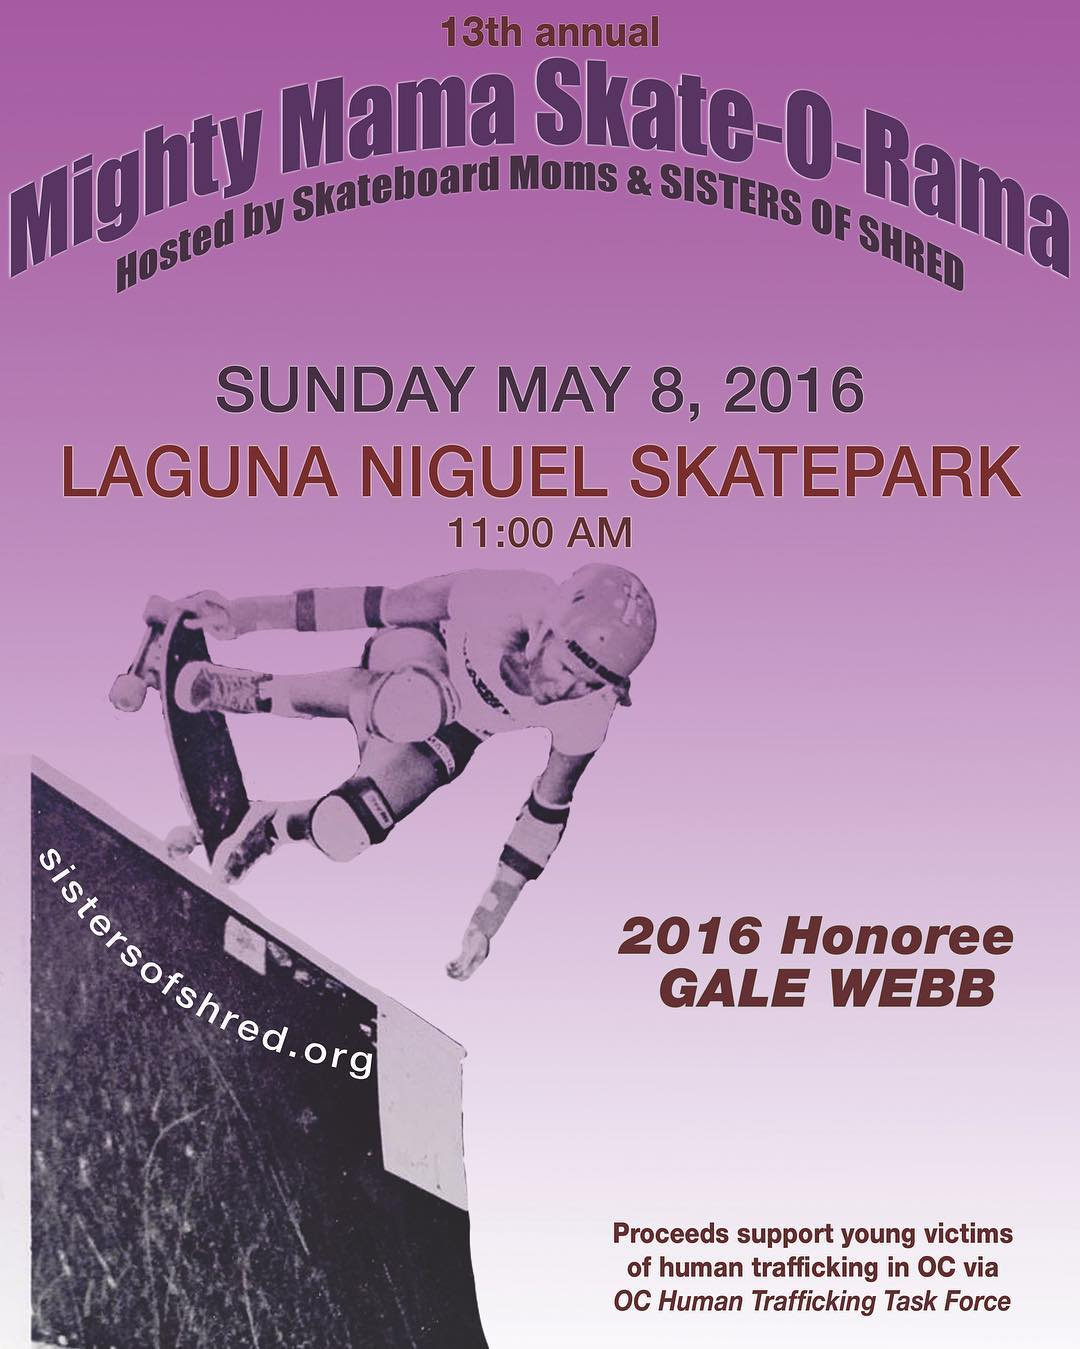 California! Our absolute favorite group of +50 years old skate moms, The Skateboard Moms & Sister of Shred @skatemoms_sistersofshred are hosting tomorrow Sunday 8 the 13TH ANNUAL MIGHTY MAMA SKATE O RAMA at Laguna Niguel skatepark in Orange Co.,...